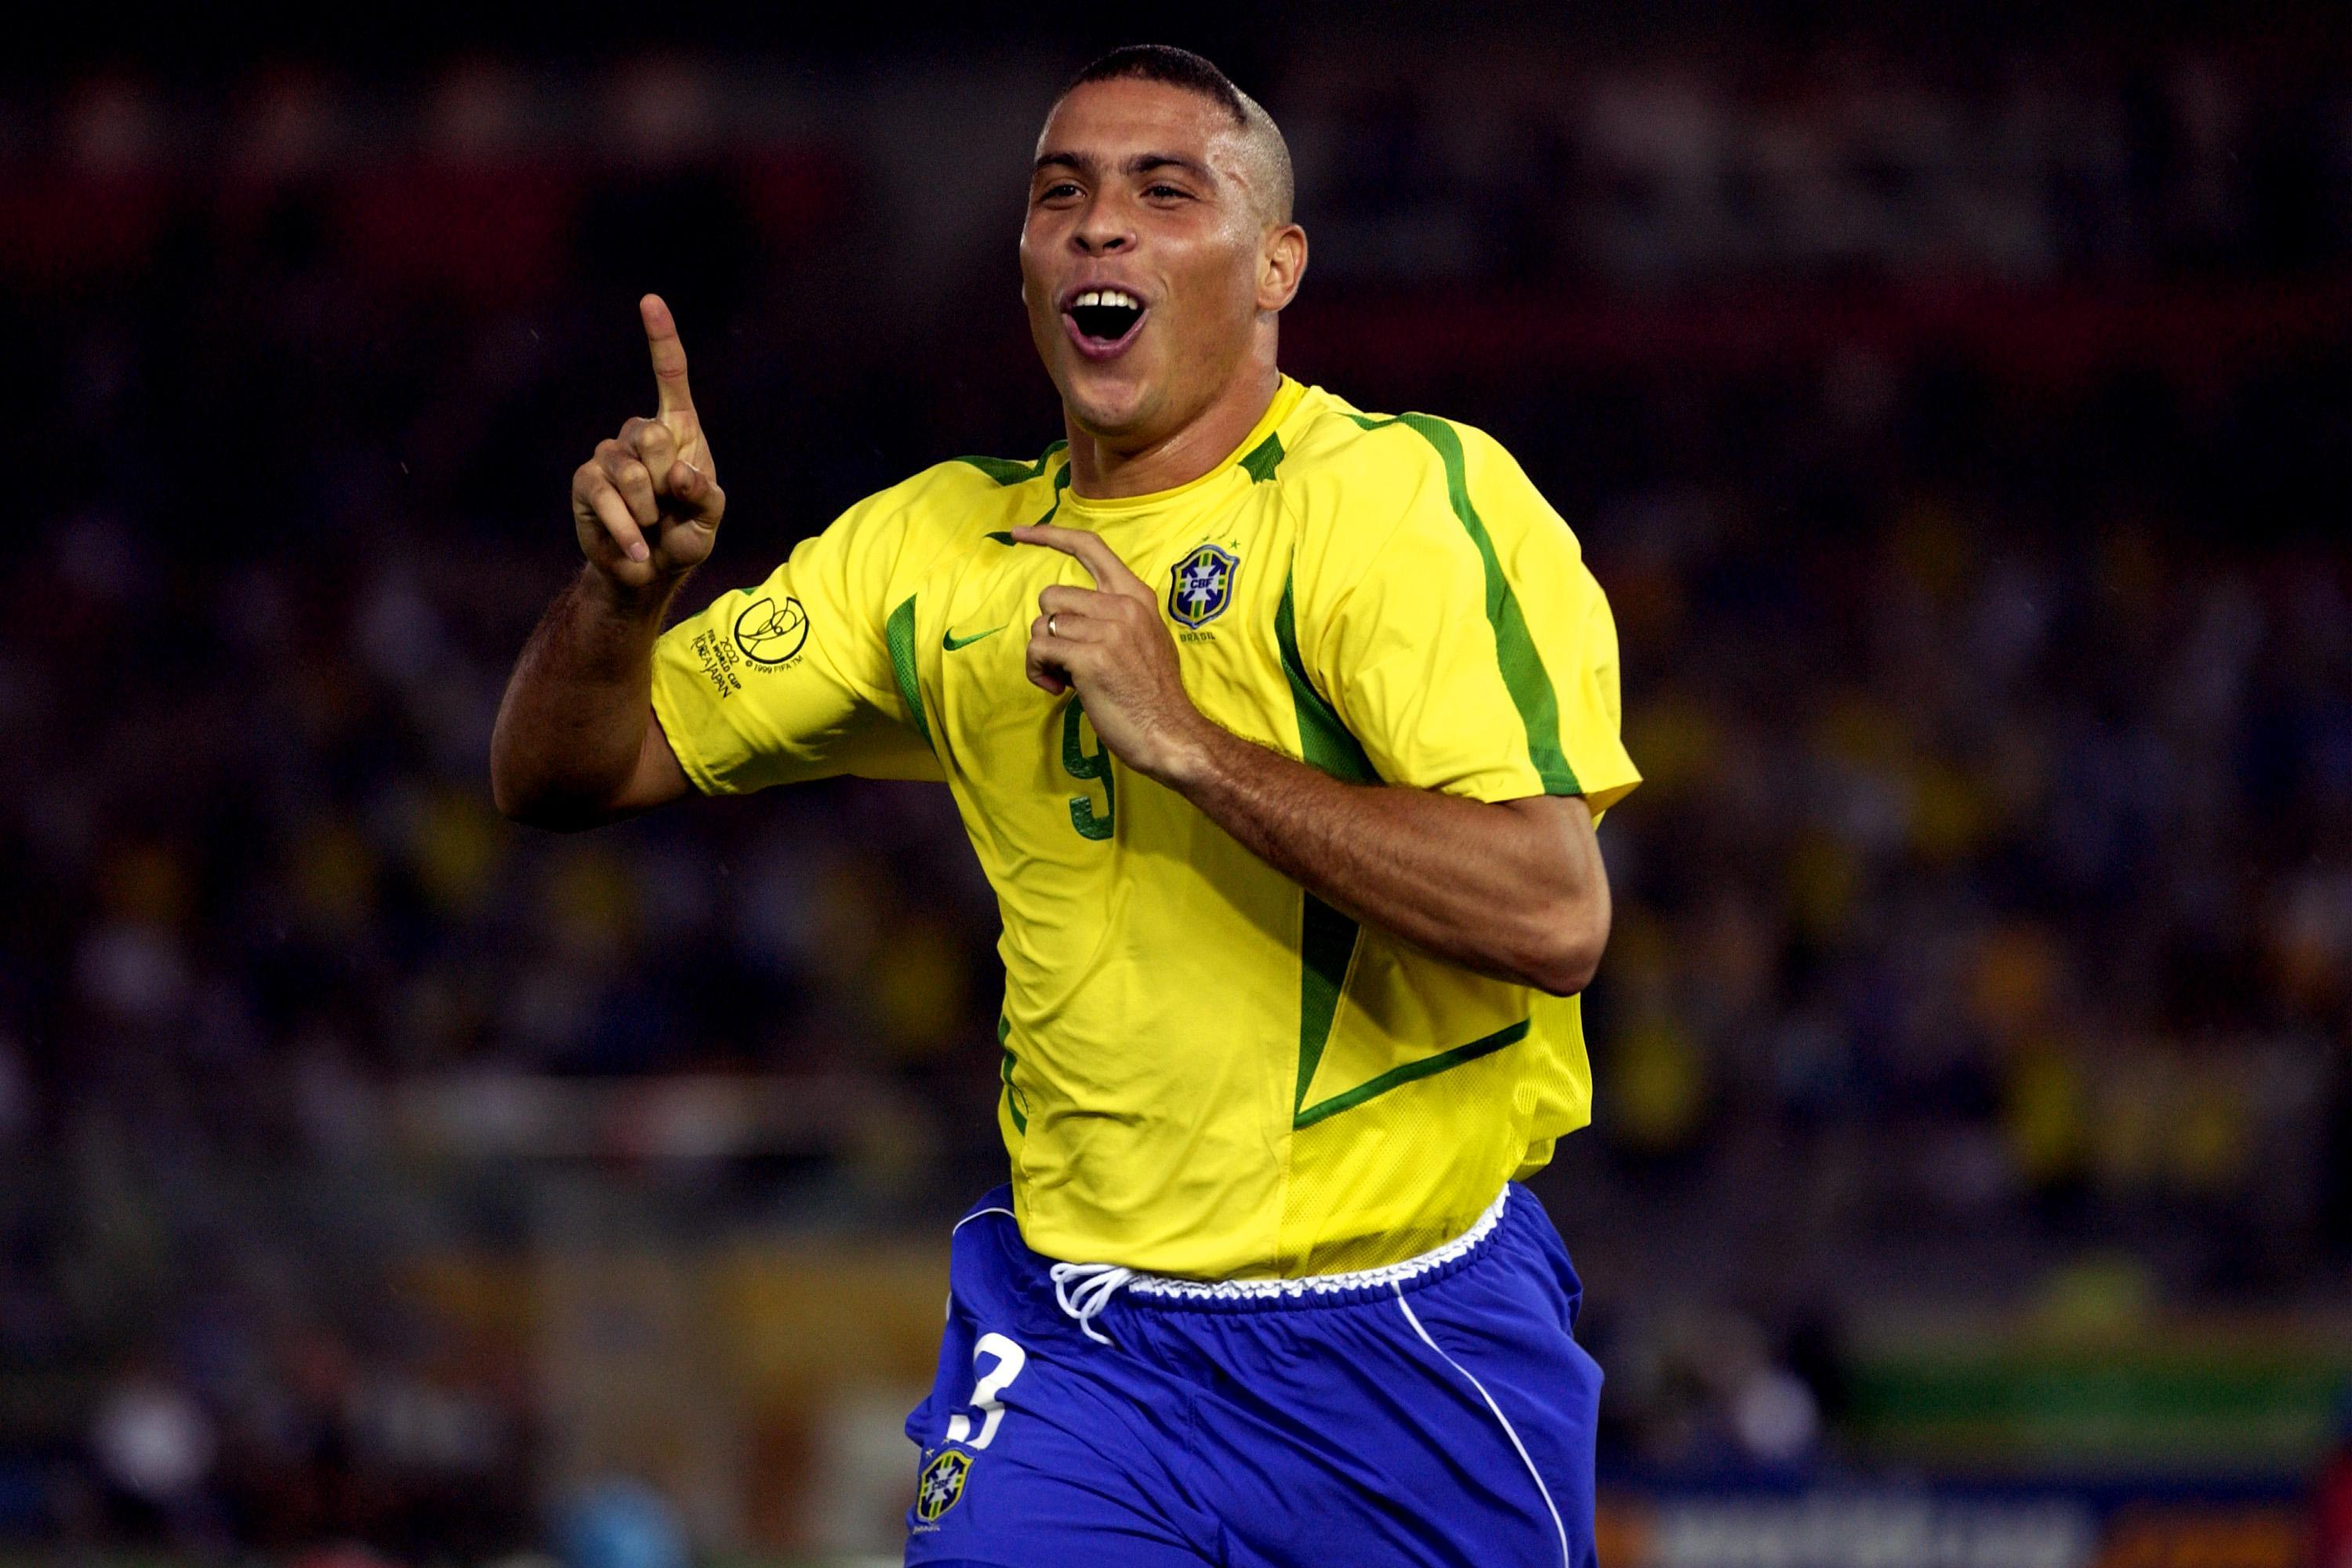 Ronaldo celebrates scoring his first in the 2002 final against Germany. Image: PA Images